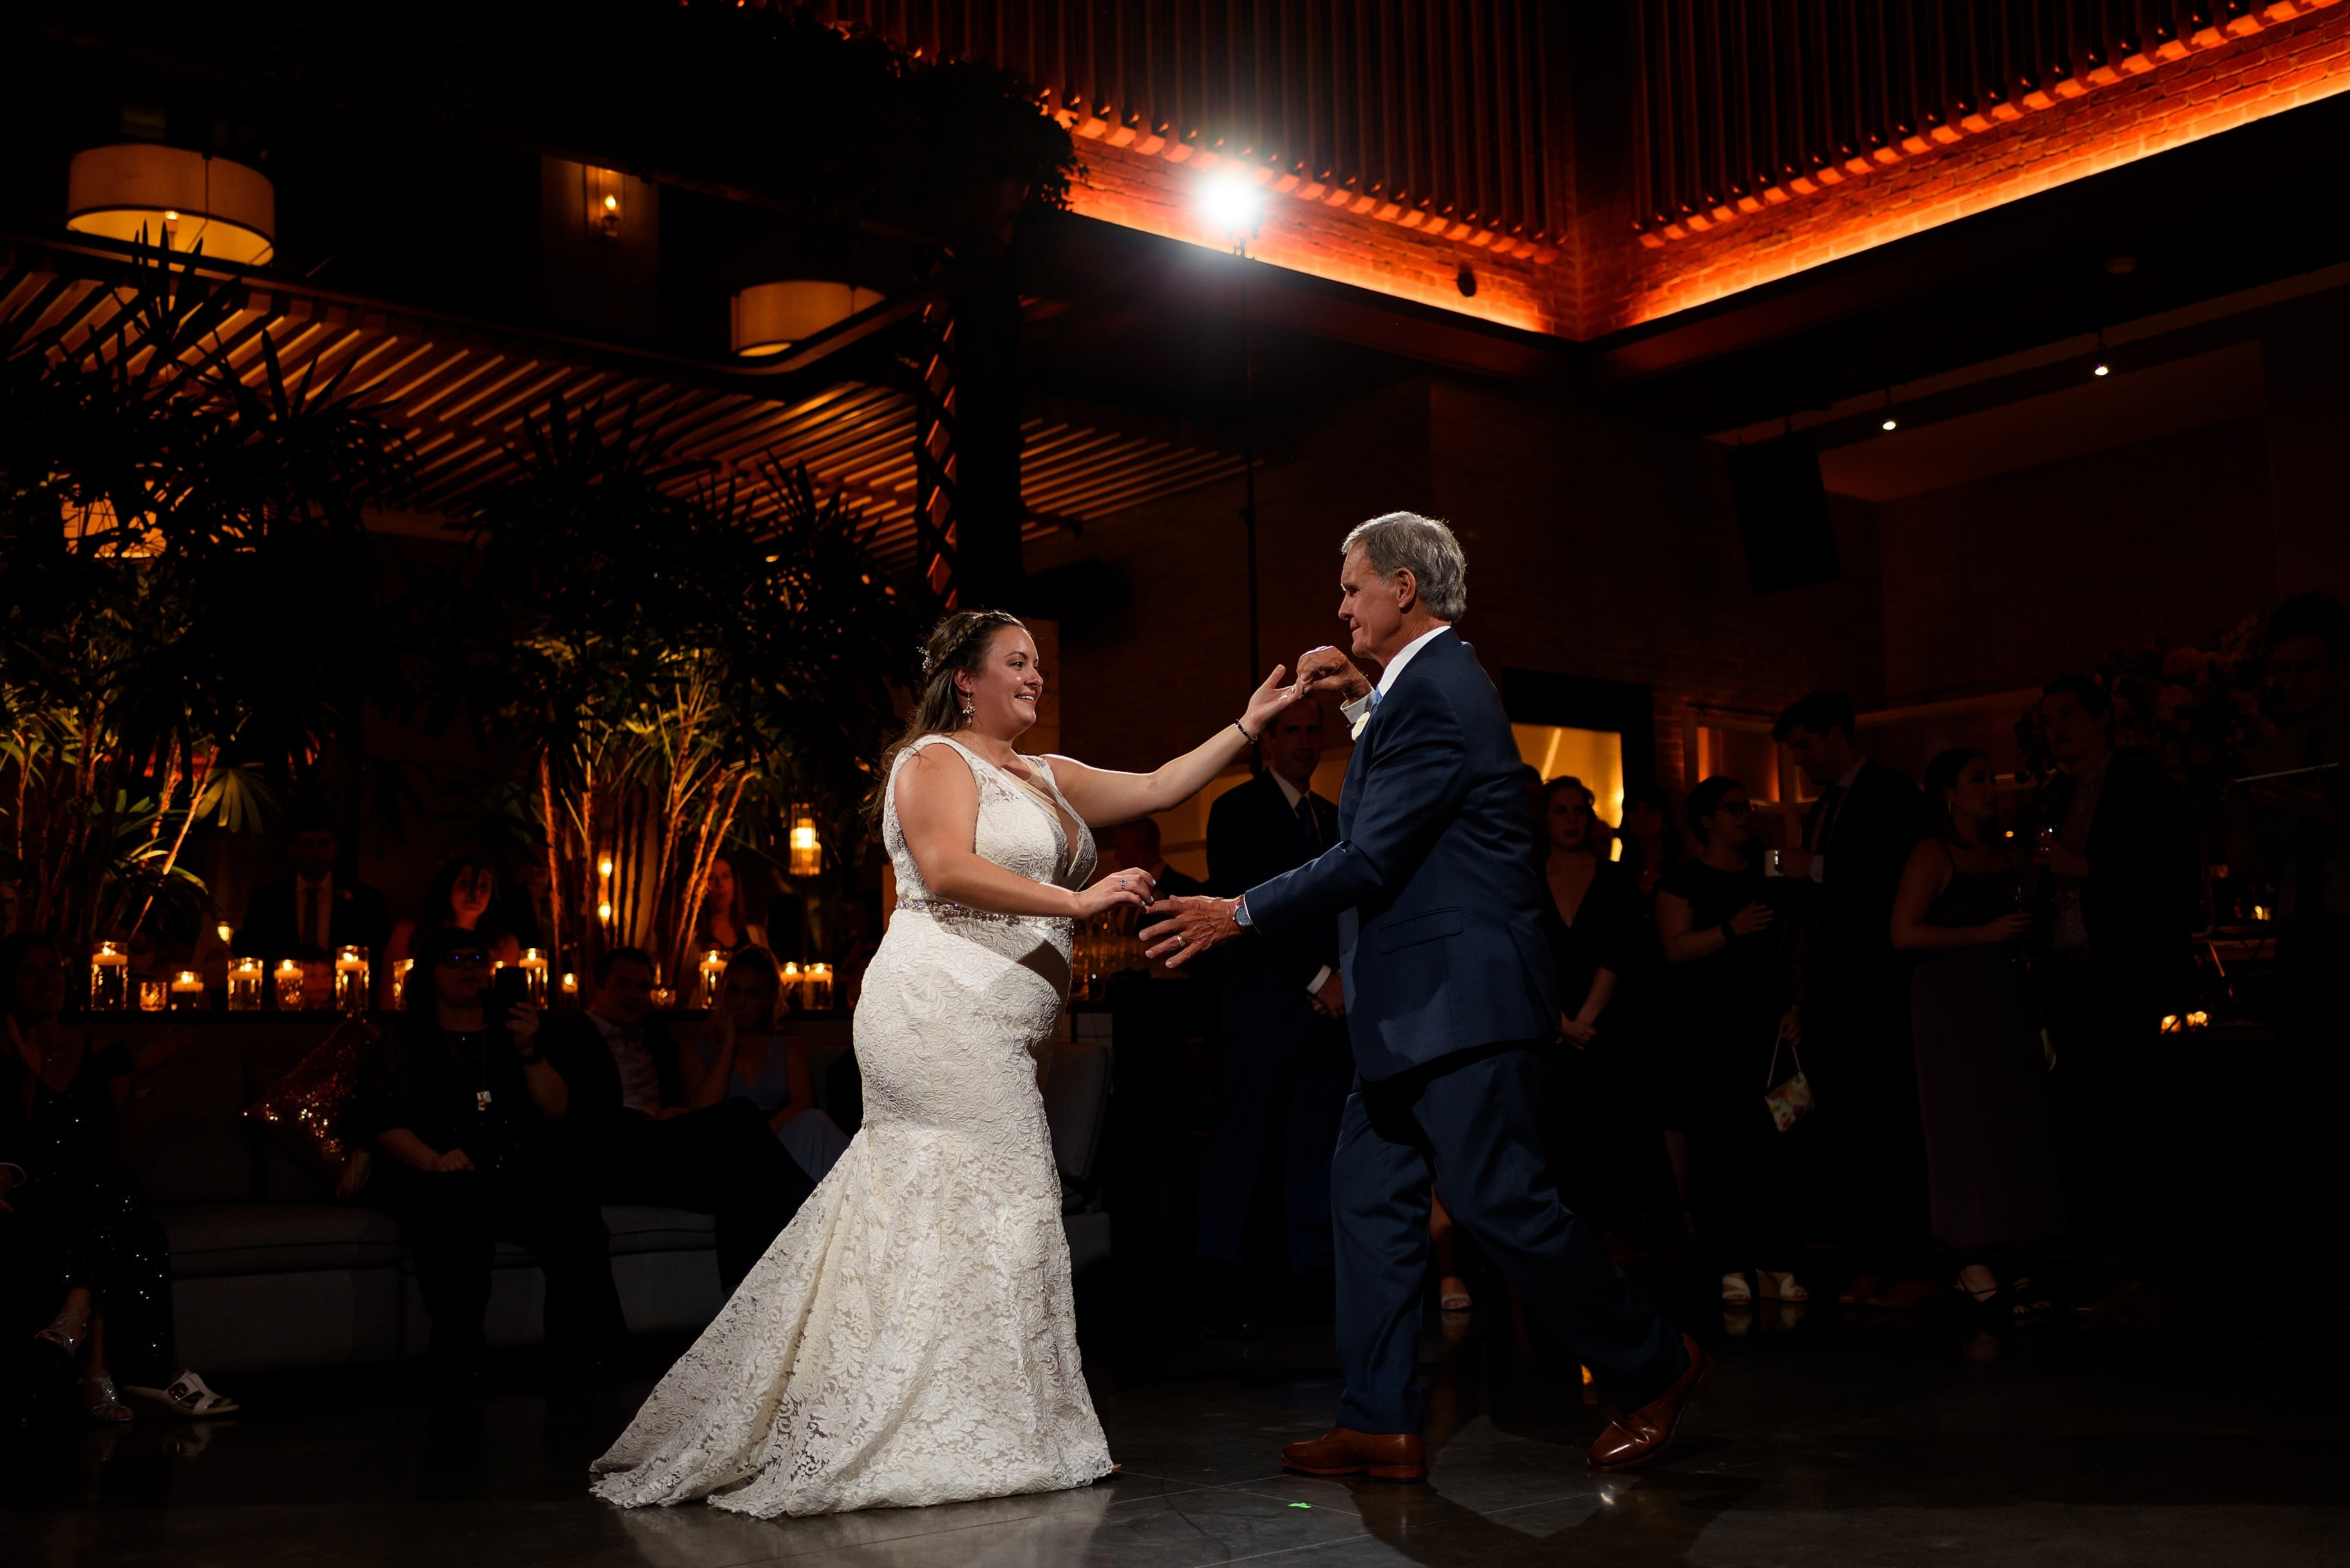 dance during wedding reception at Boleo rooftop bar at Kimpton Gray Hotel in downtown Chicago